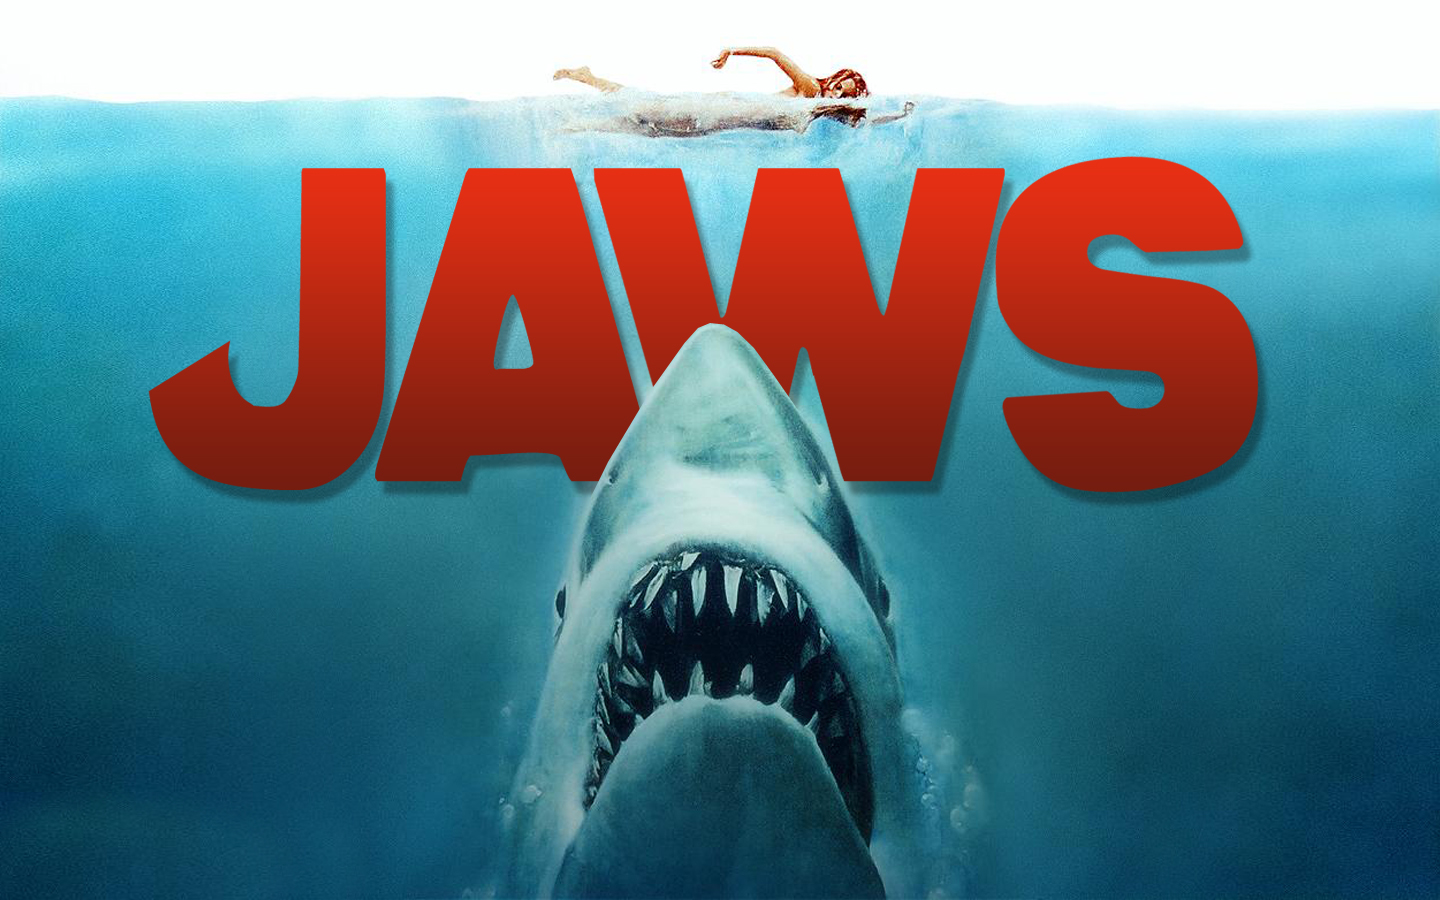 http://2.bp.blogspot.com/-WVR4BRHINp8/UAPBNJWkenI/AAAAAAAABo0/4L8lXpZLyRk/s1600/MOVIE_-_JAWS_WALLPAPER.jpg